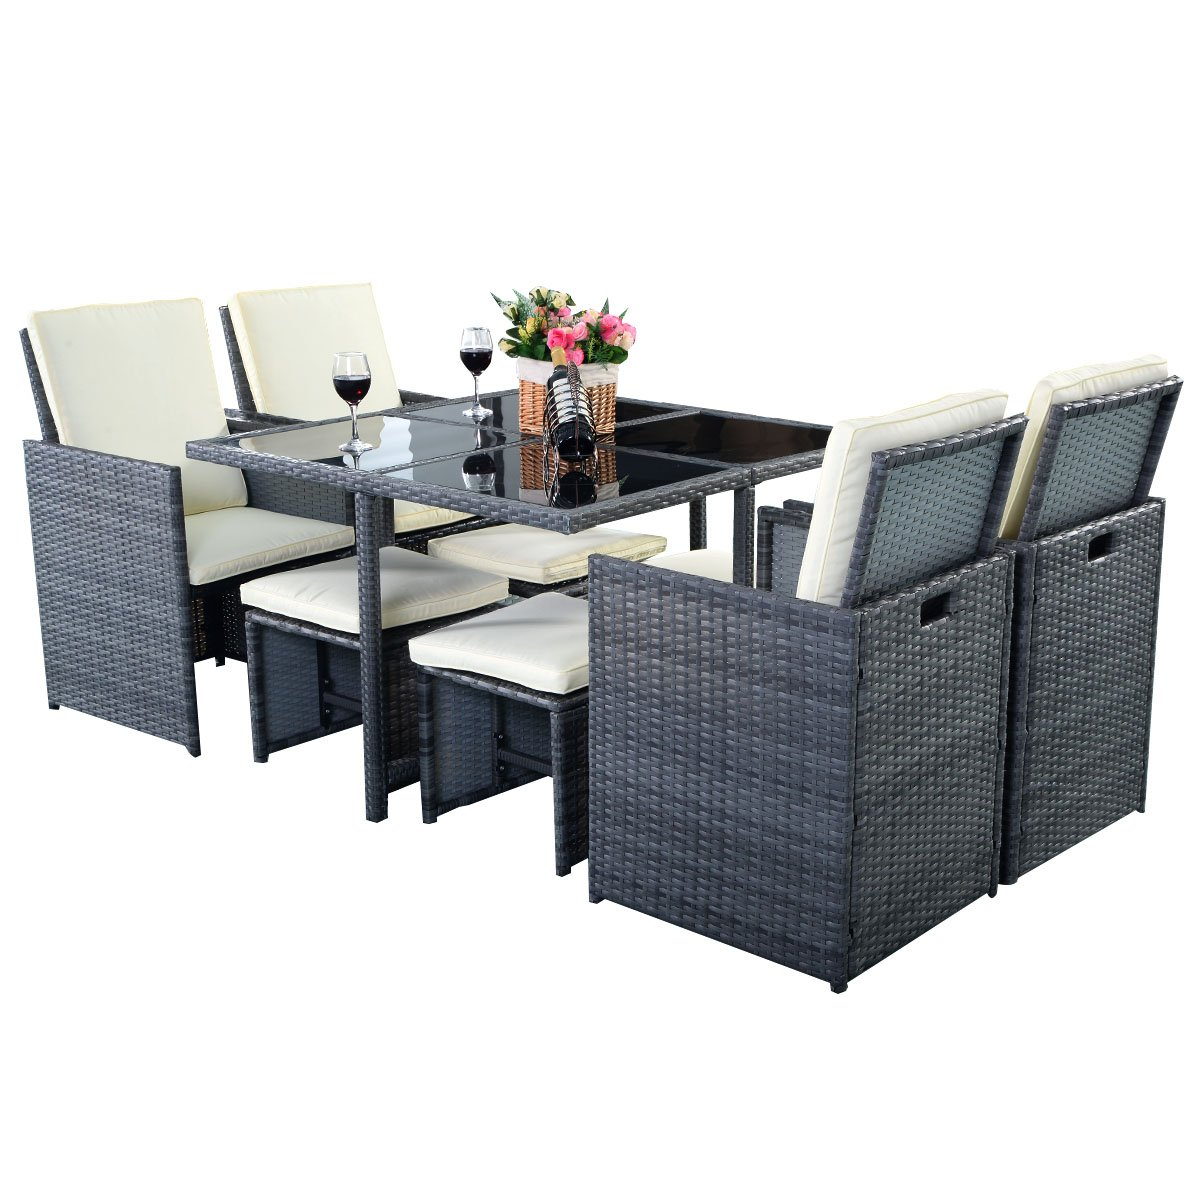 Poly rattan gartenm bel sitzgarnitur lounge gartengarnitur for Lounge set rattan gunstig